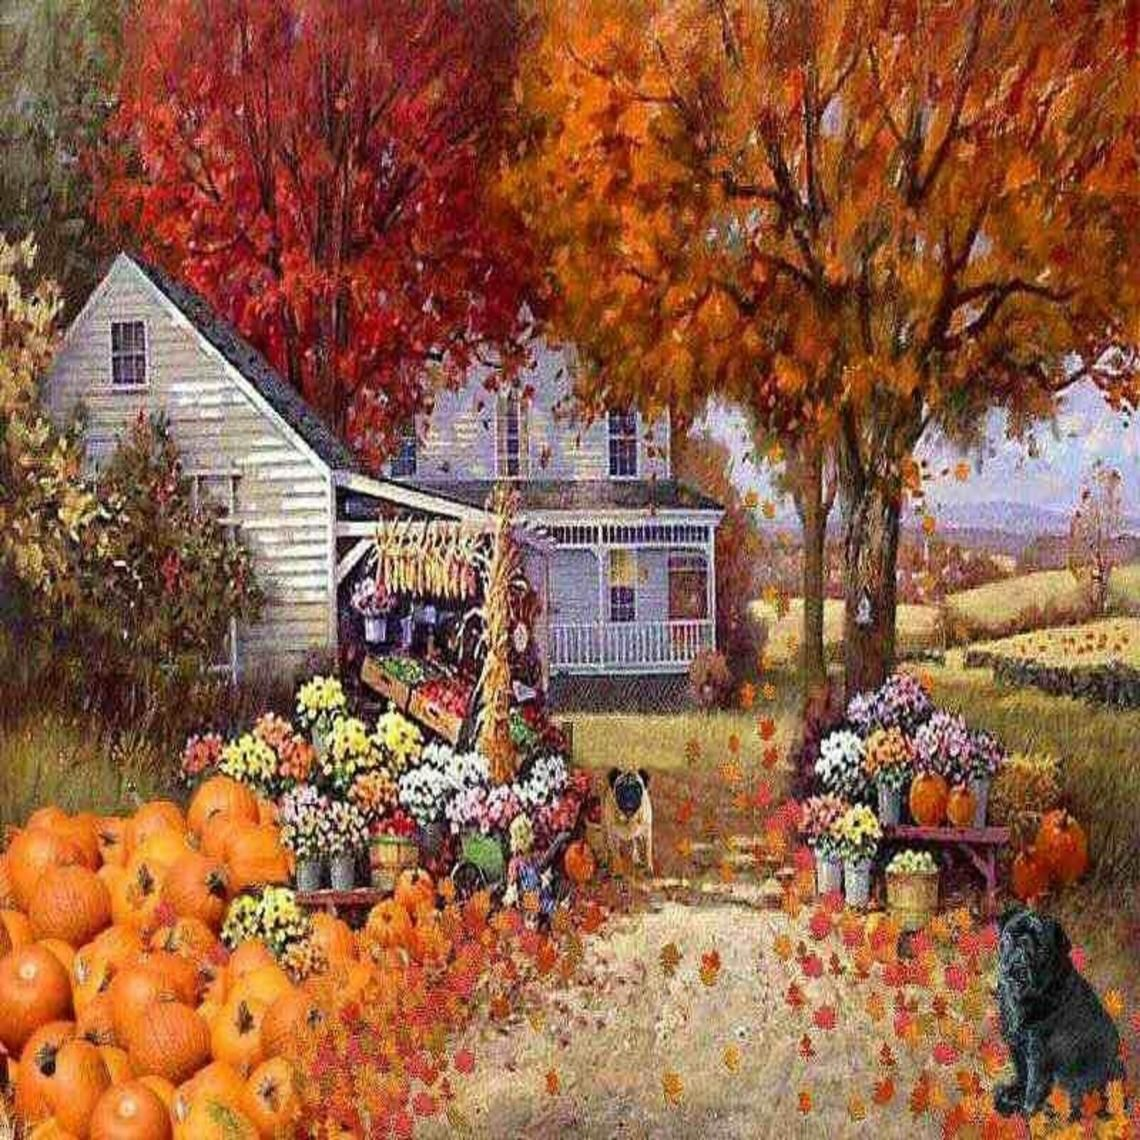 The Country Pumpkins